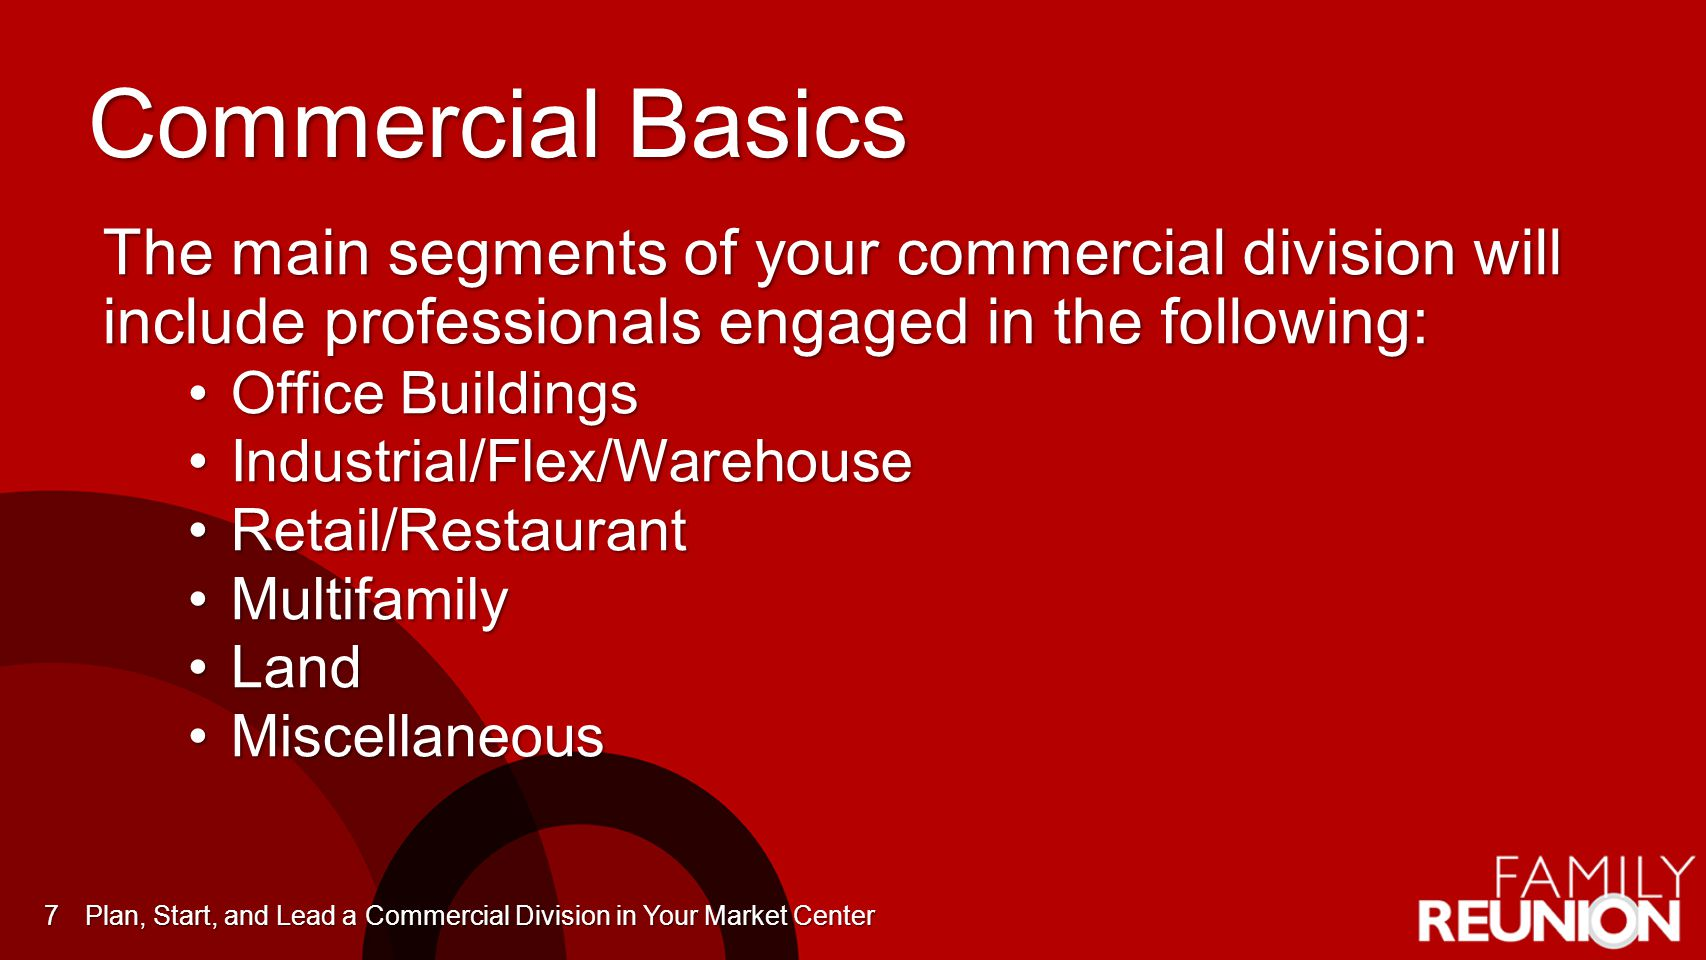 Commercial Basics The main segments of your commercial division will include professionals engaged in the following: Office BuildingsOffice Buildings Industrial/Flex/WarehouseIndustrial/Flex/Warehouse Retail/RestaurantRetail/Restaurant MultifamilyMultifamily LandLand MiscellaneousMiscellaneous Plan, Start, and Lead a Commercial Division in Your Market Center7